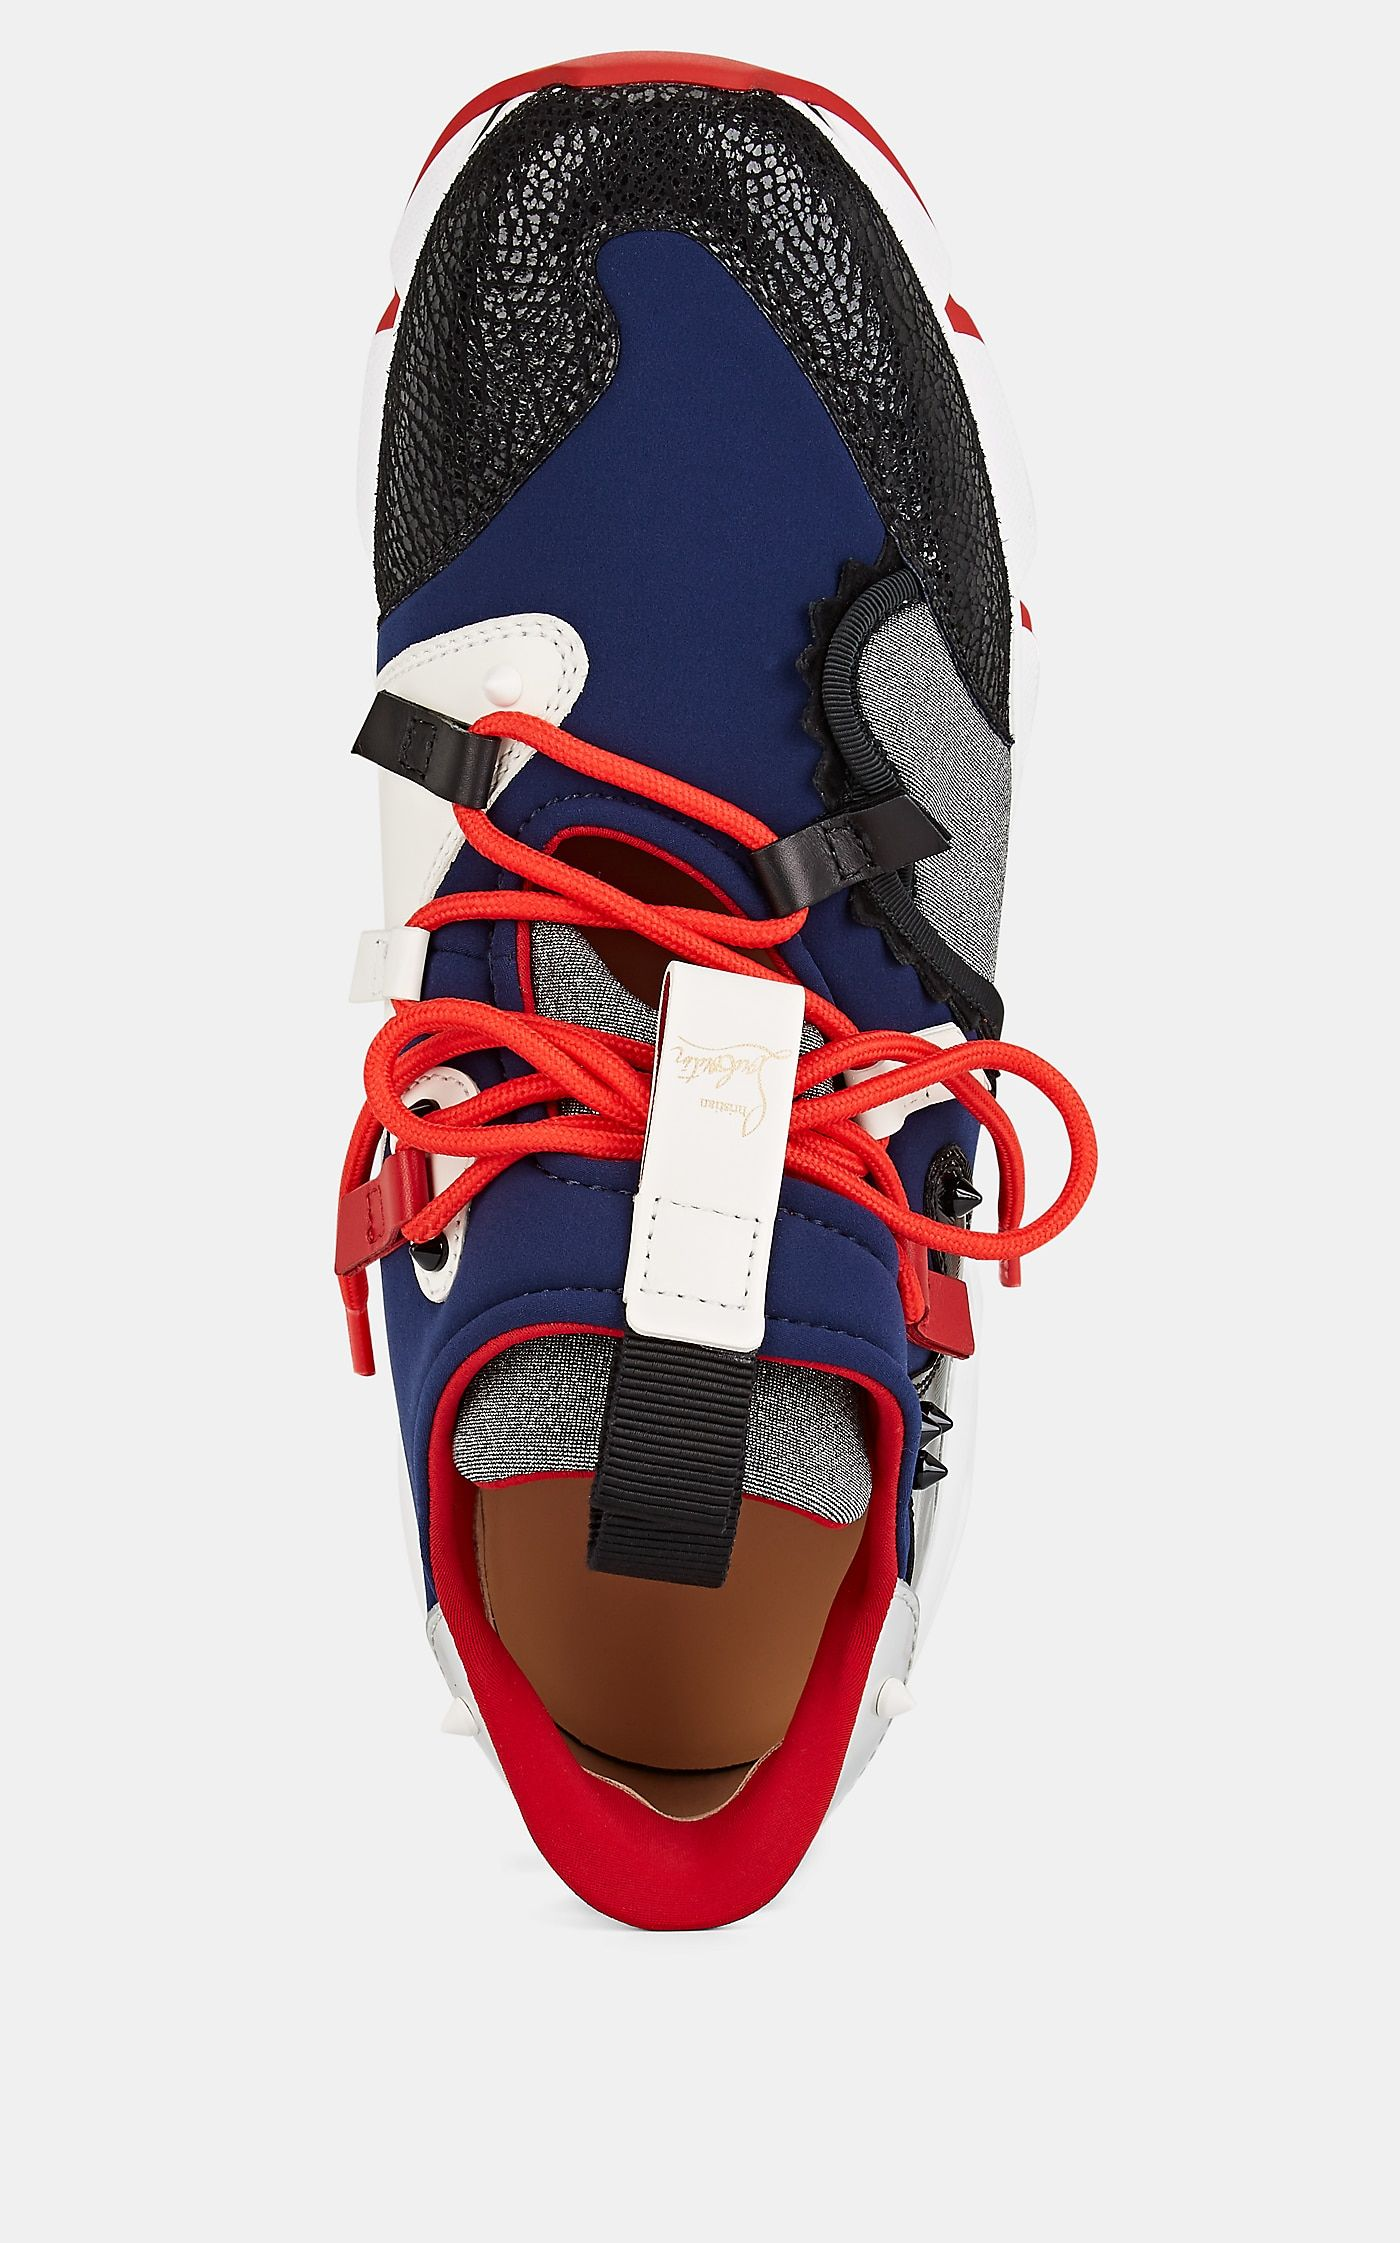 0af9ade59ddc Christian Louboutin Men s Red-Runner Mixed-Material Sneakers - Navy ...